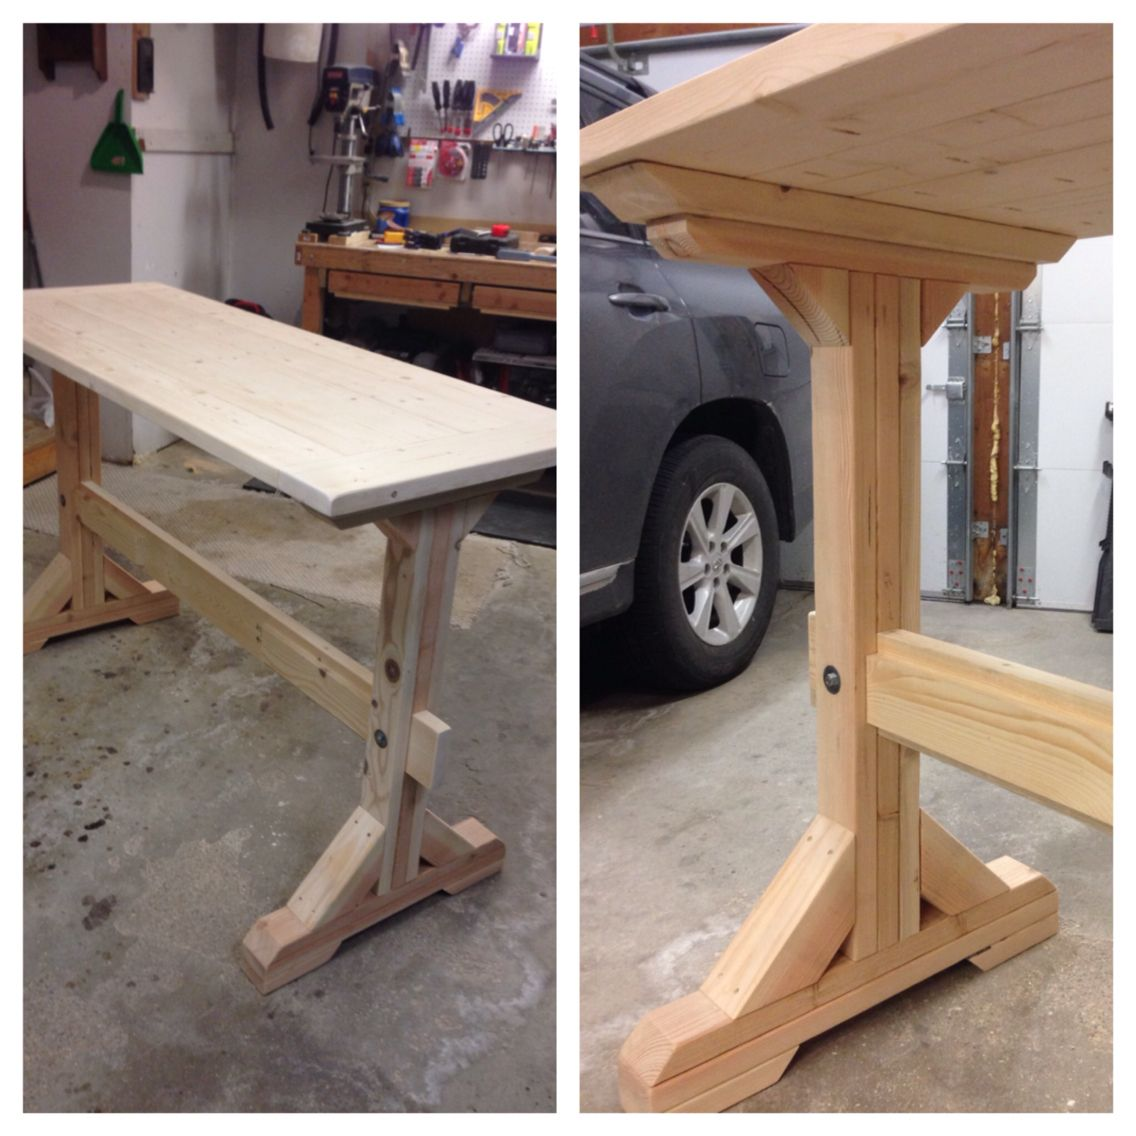 Captivating Pub Table I Made From 2x6, 2x4 And 4x4 Dimensional Lumber. Farmhouse Style.